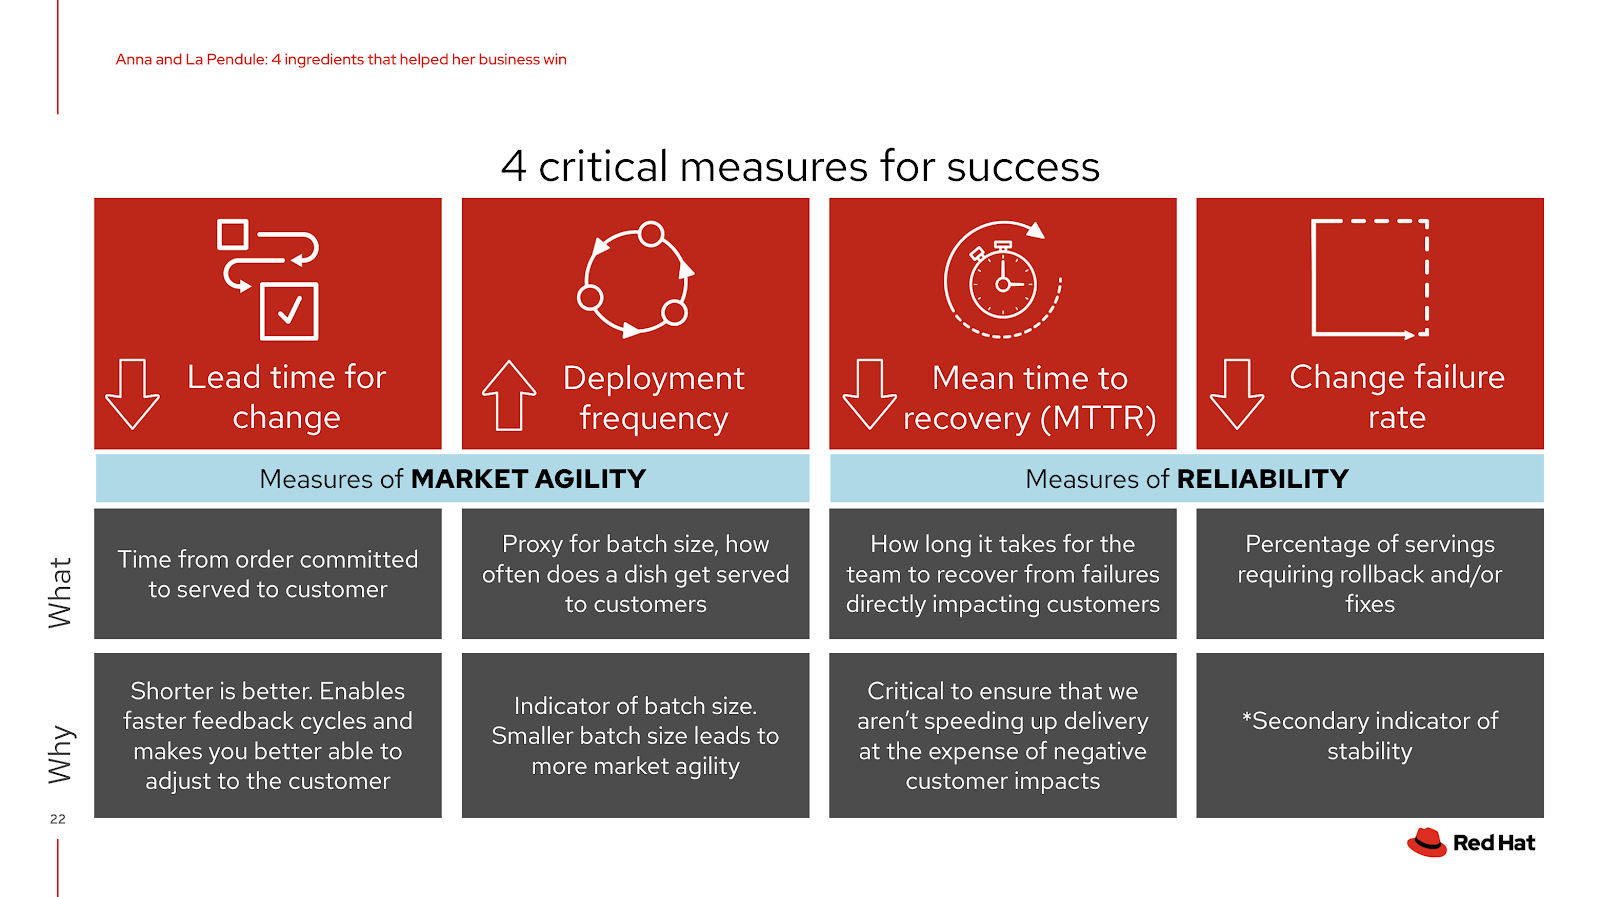 4 critical measures for success